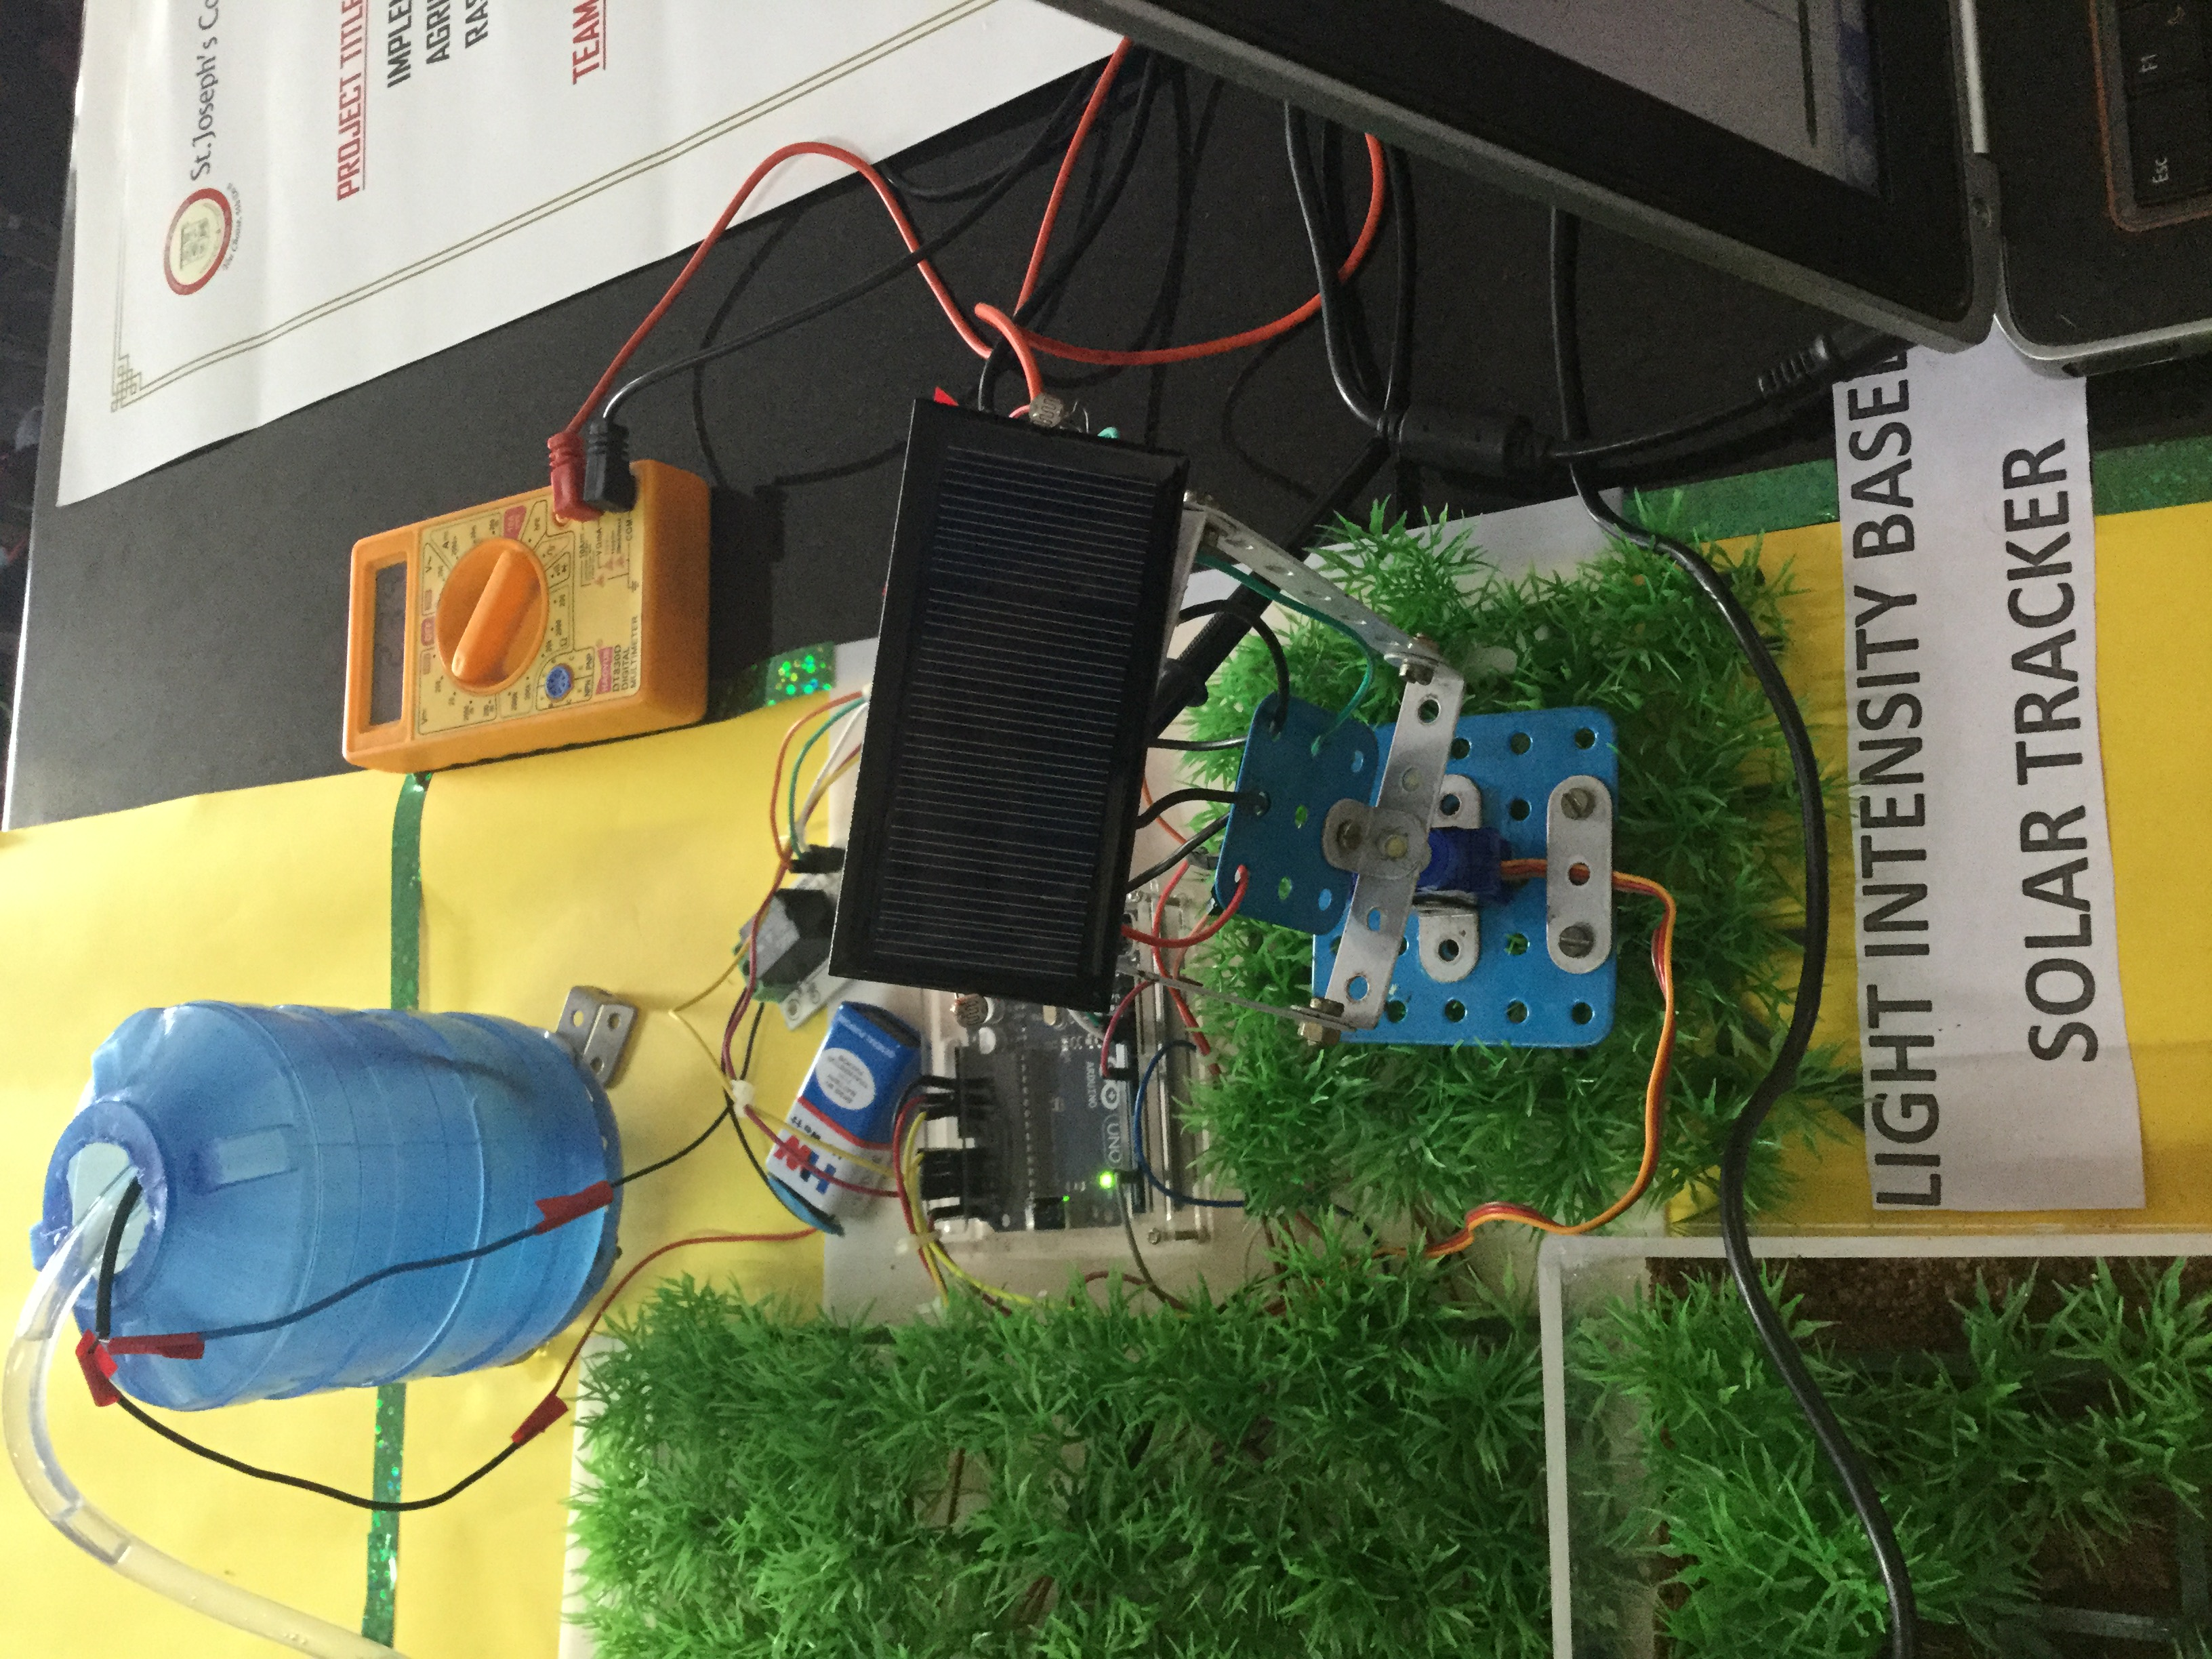 IMPLEMENTATION OF PRECISION AGRICULTURE THROUGH IOT USING RASPBERRY